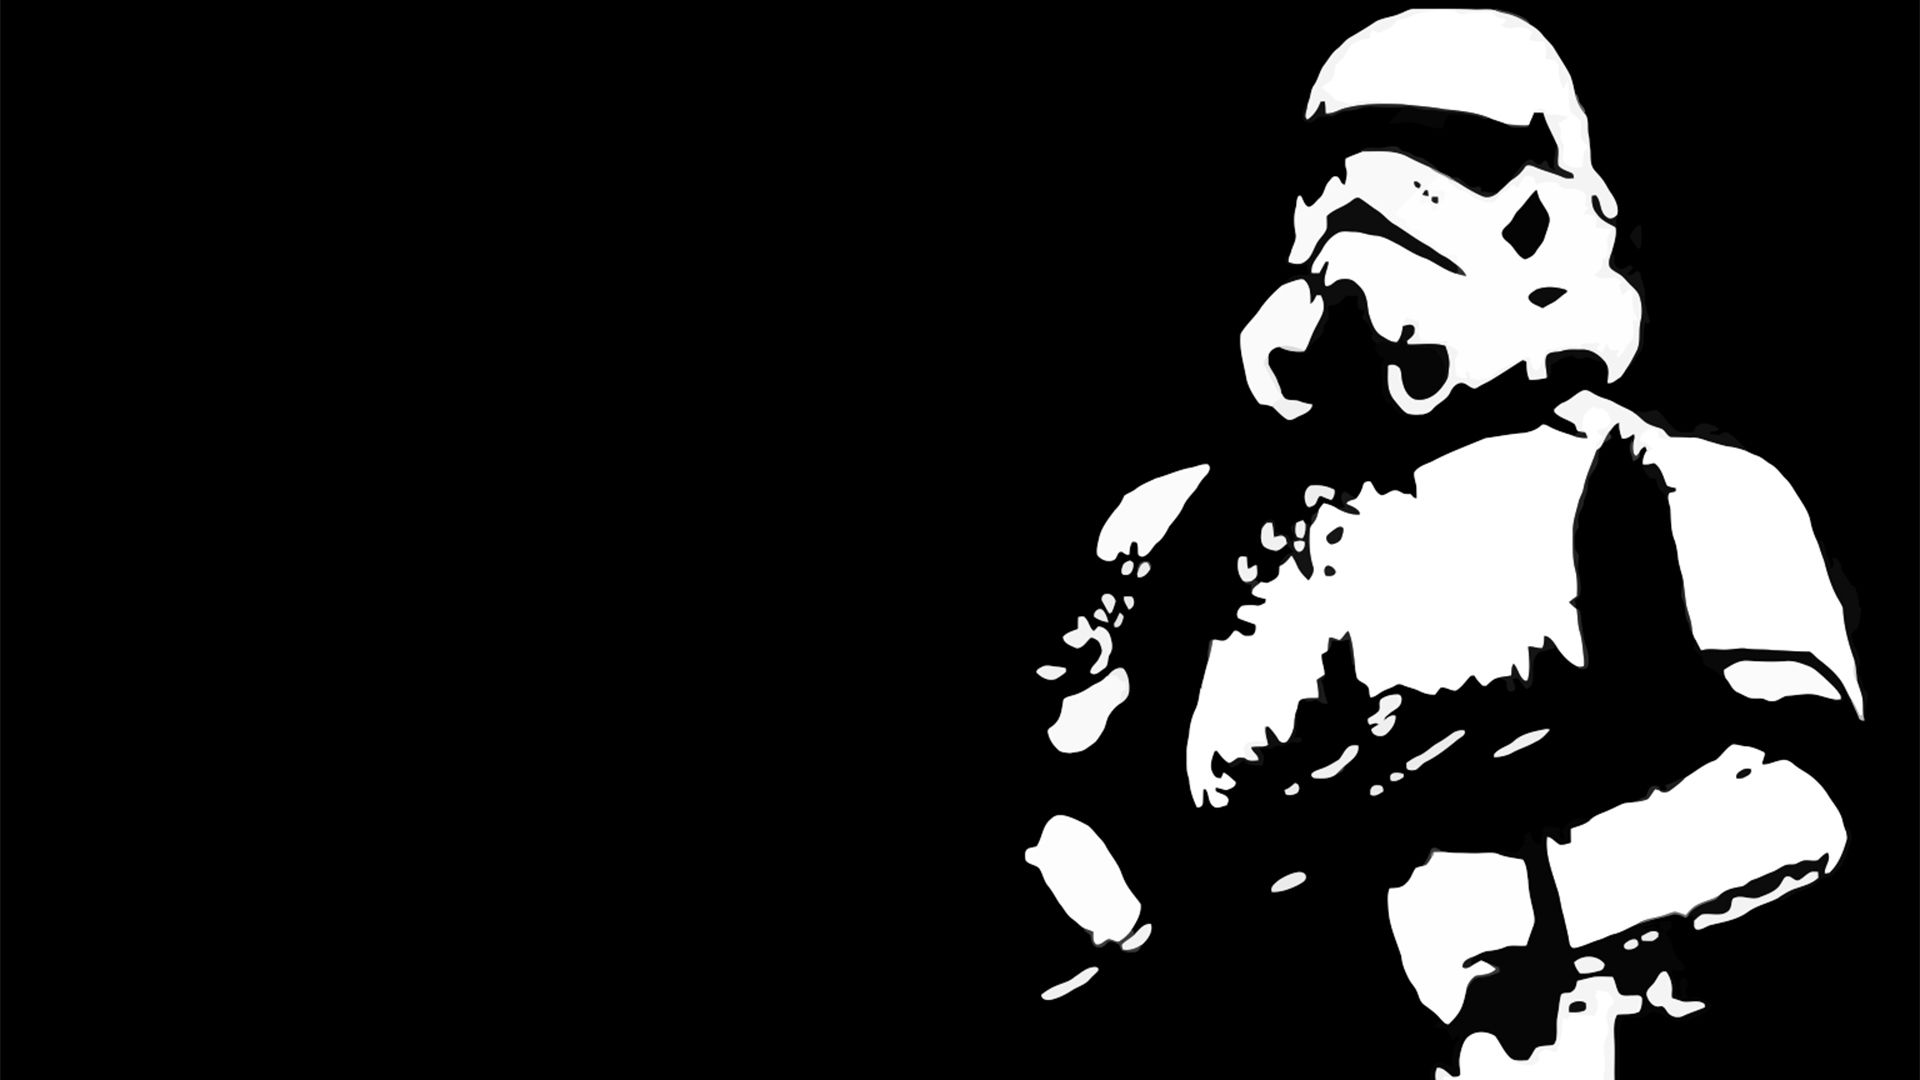 30 Wallpapers Perfect For Amoled Screens Star Wars Wallpaper